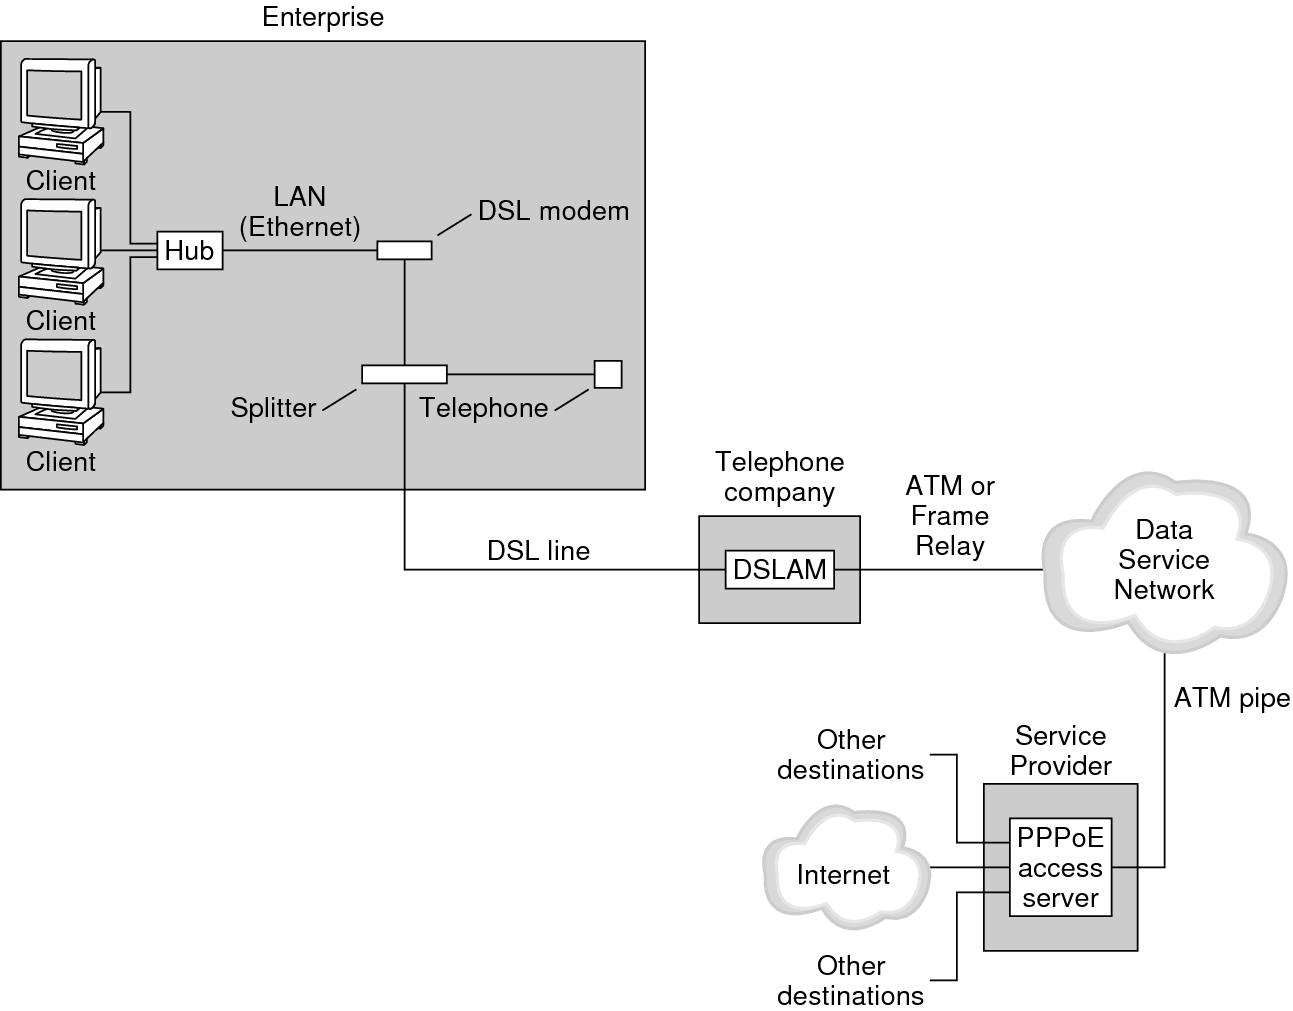 hight resolution of image the figure shows how pppoe is implemented at an enterprise a telephone company